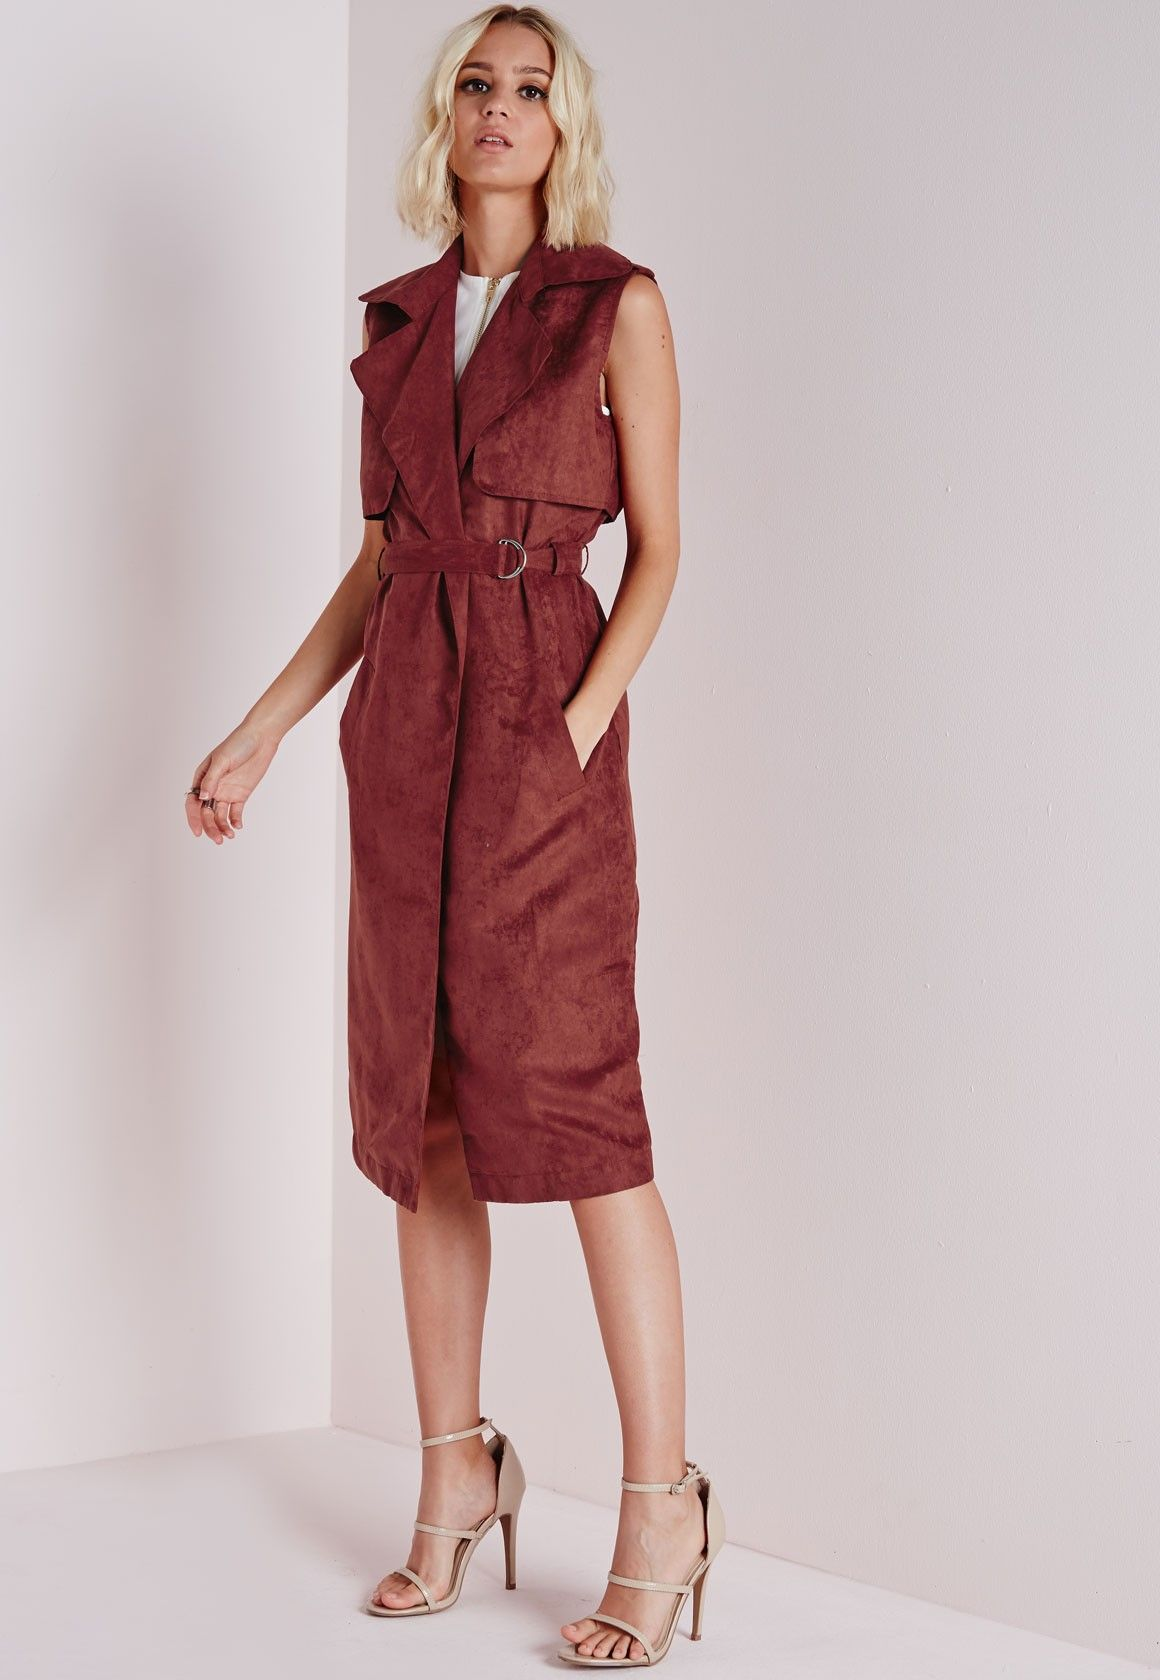 ca51e9034b3 Missguided - Faux Suede Sleeveless Belted Trench Coat Rust | Fall ...